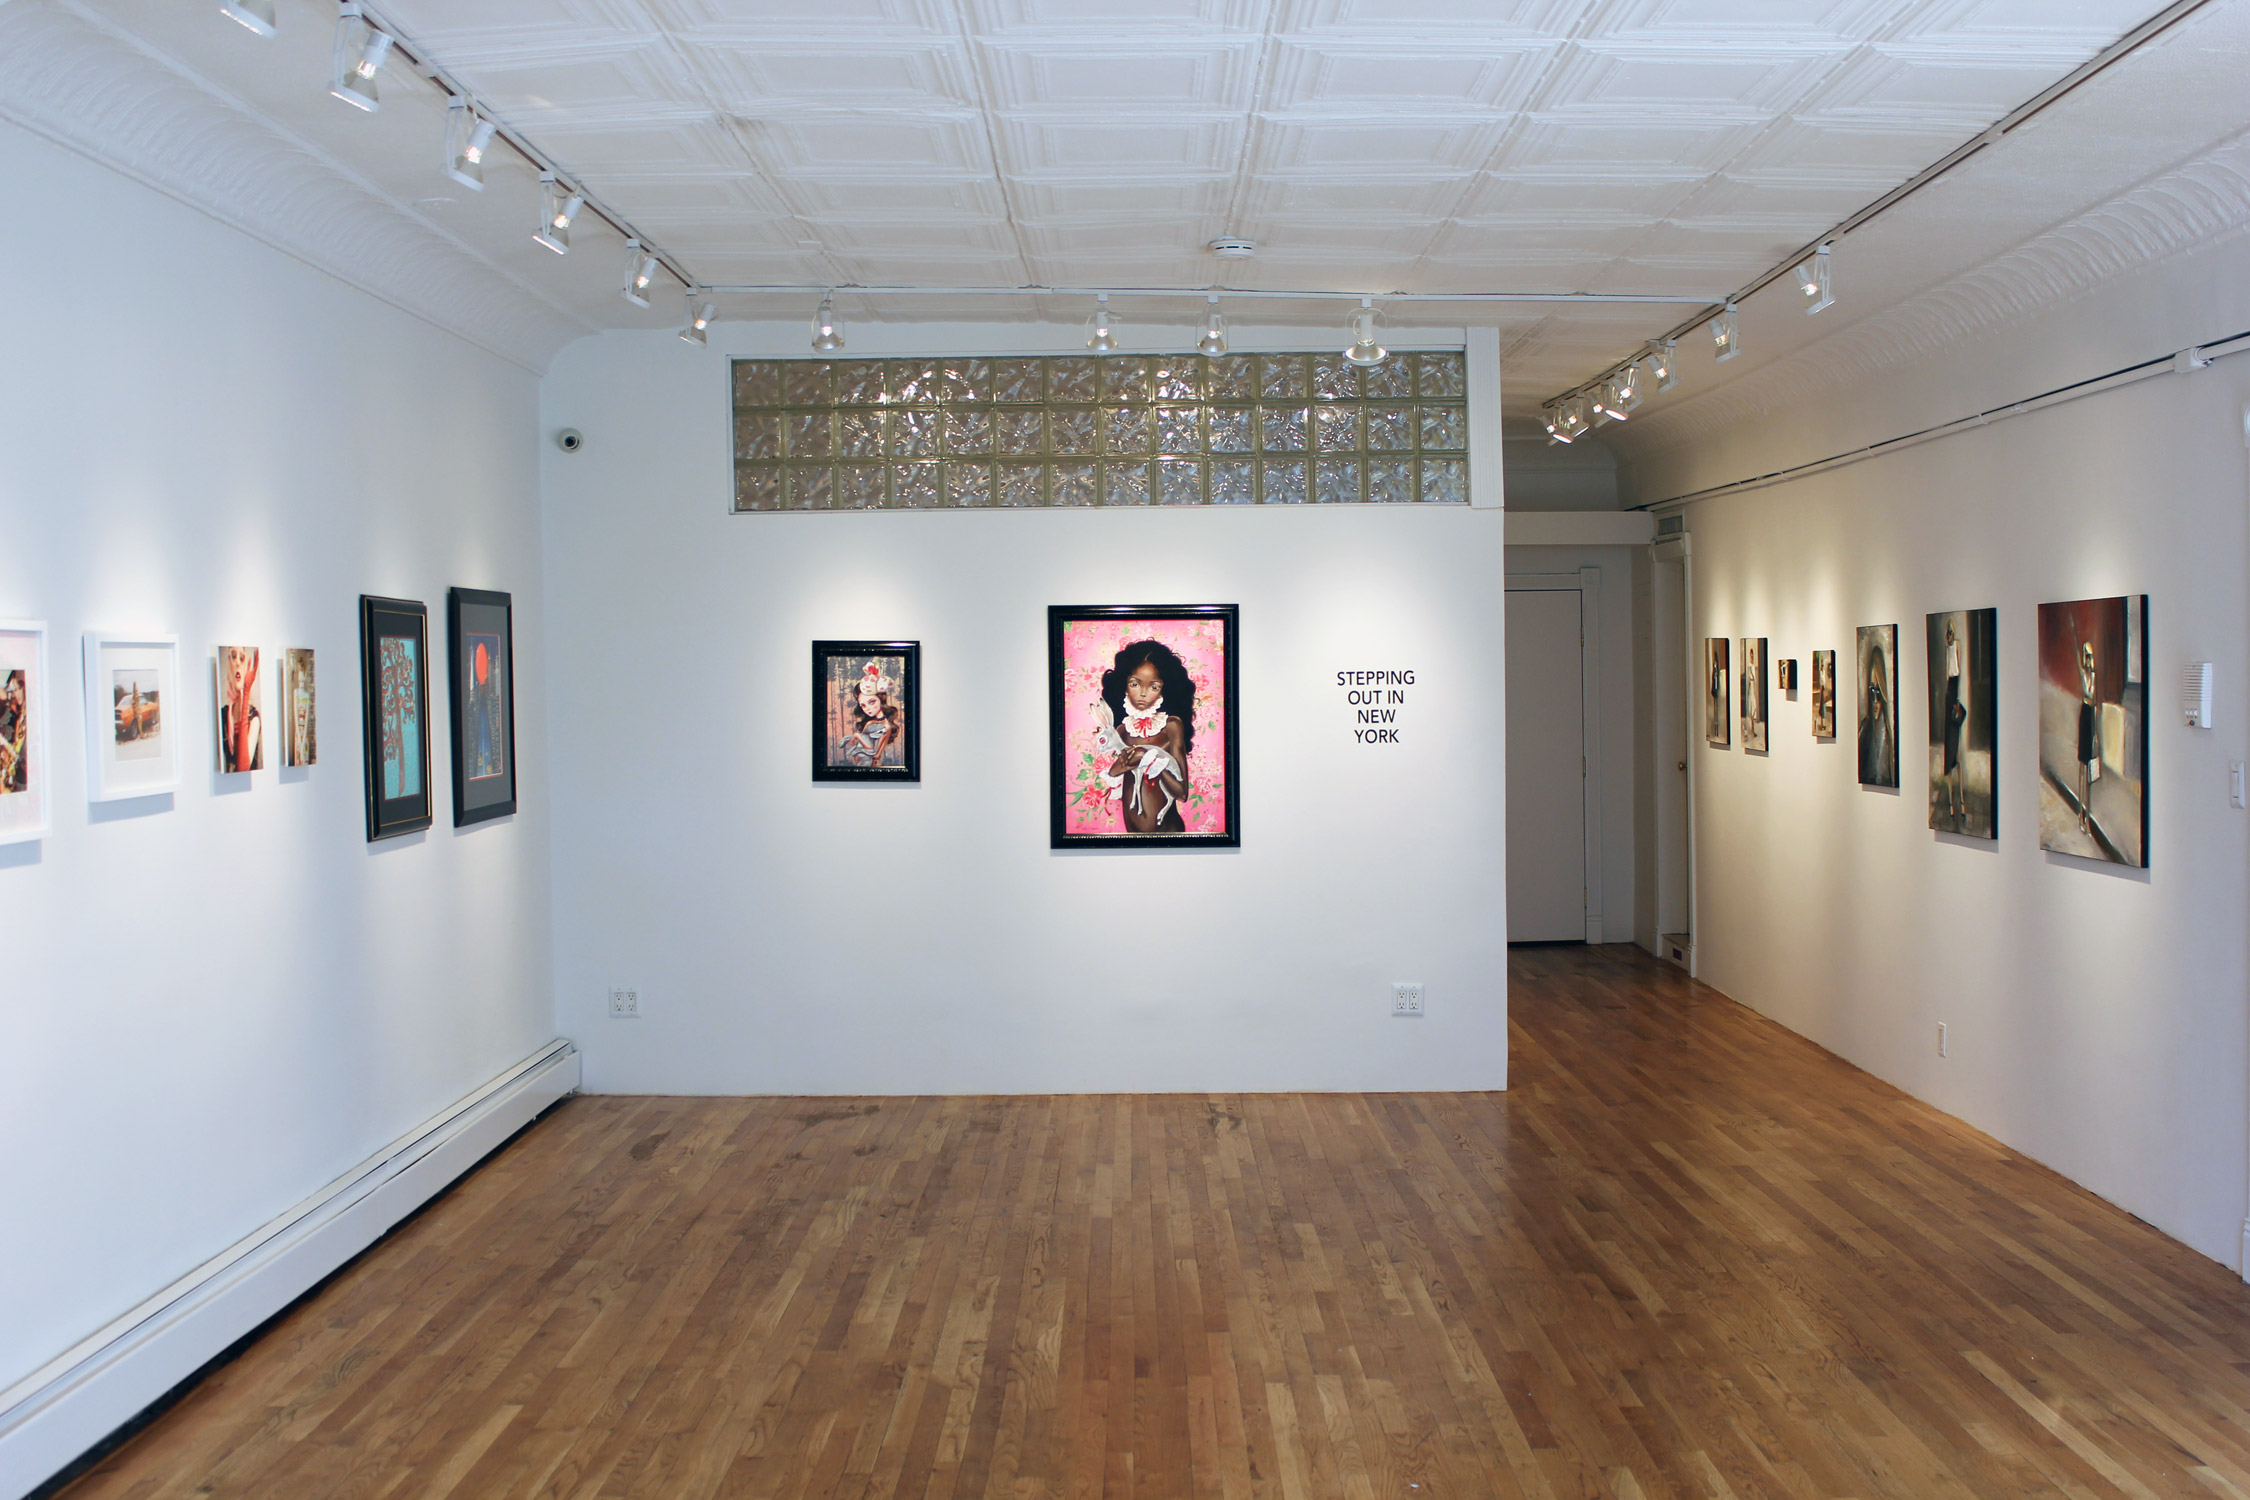 STEPPING OUT IN NEW YORK - INSTALLATION VIEW